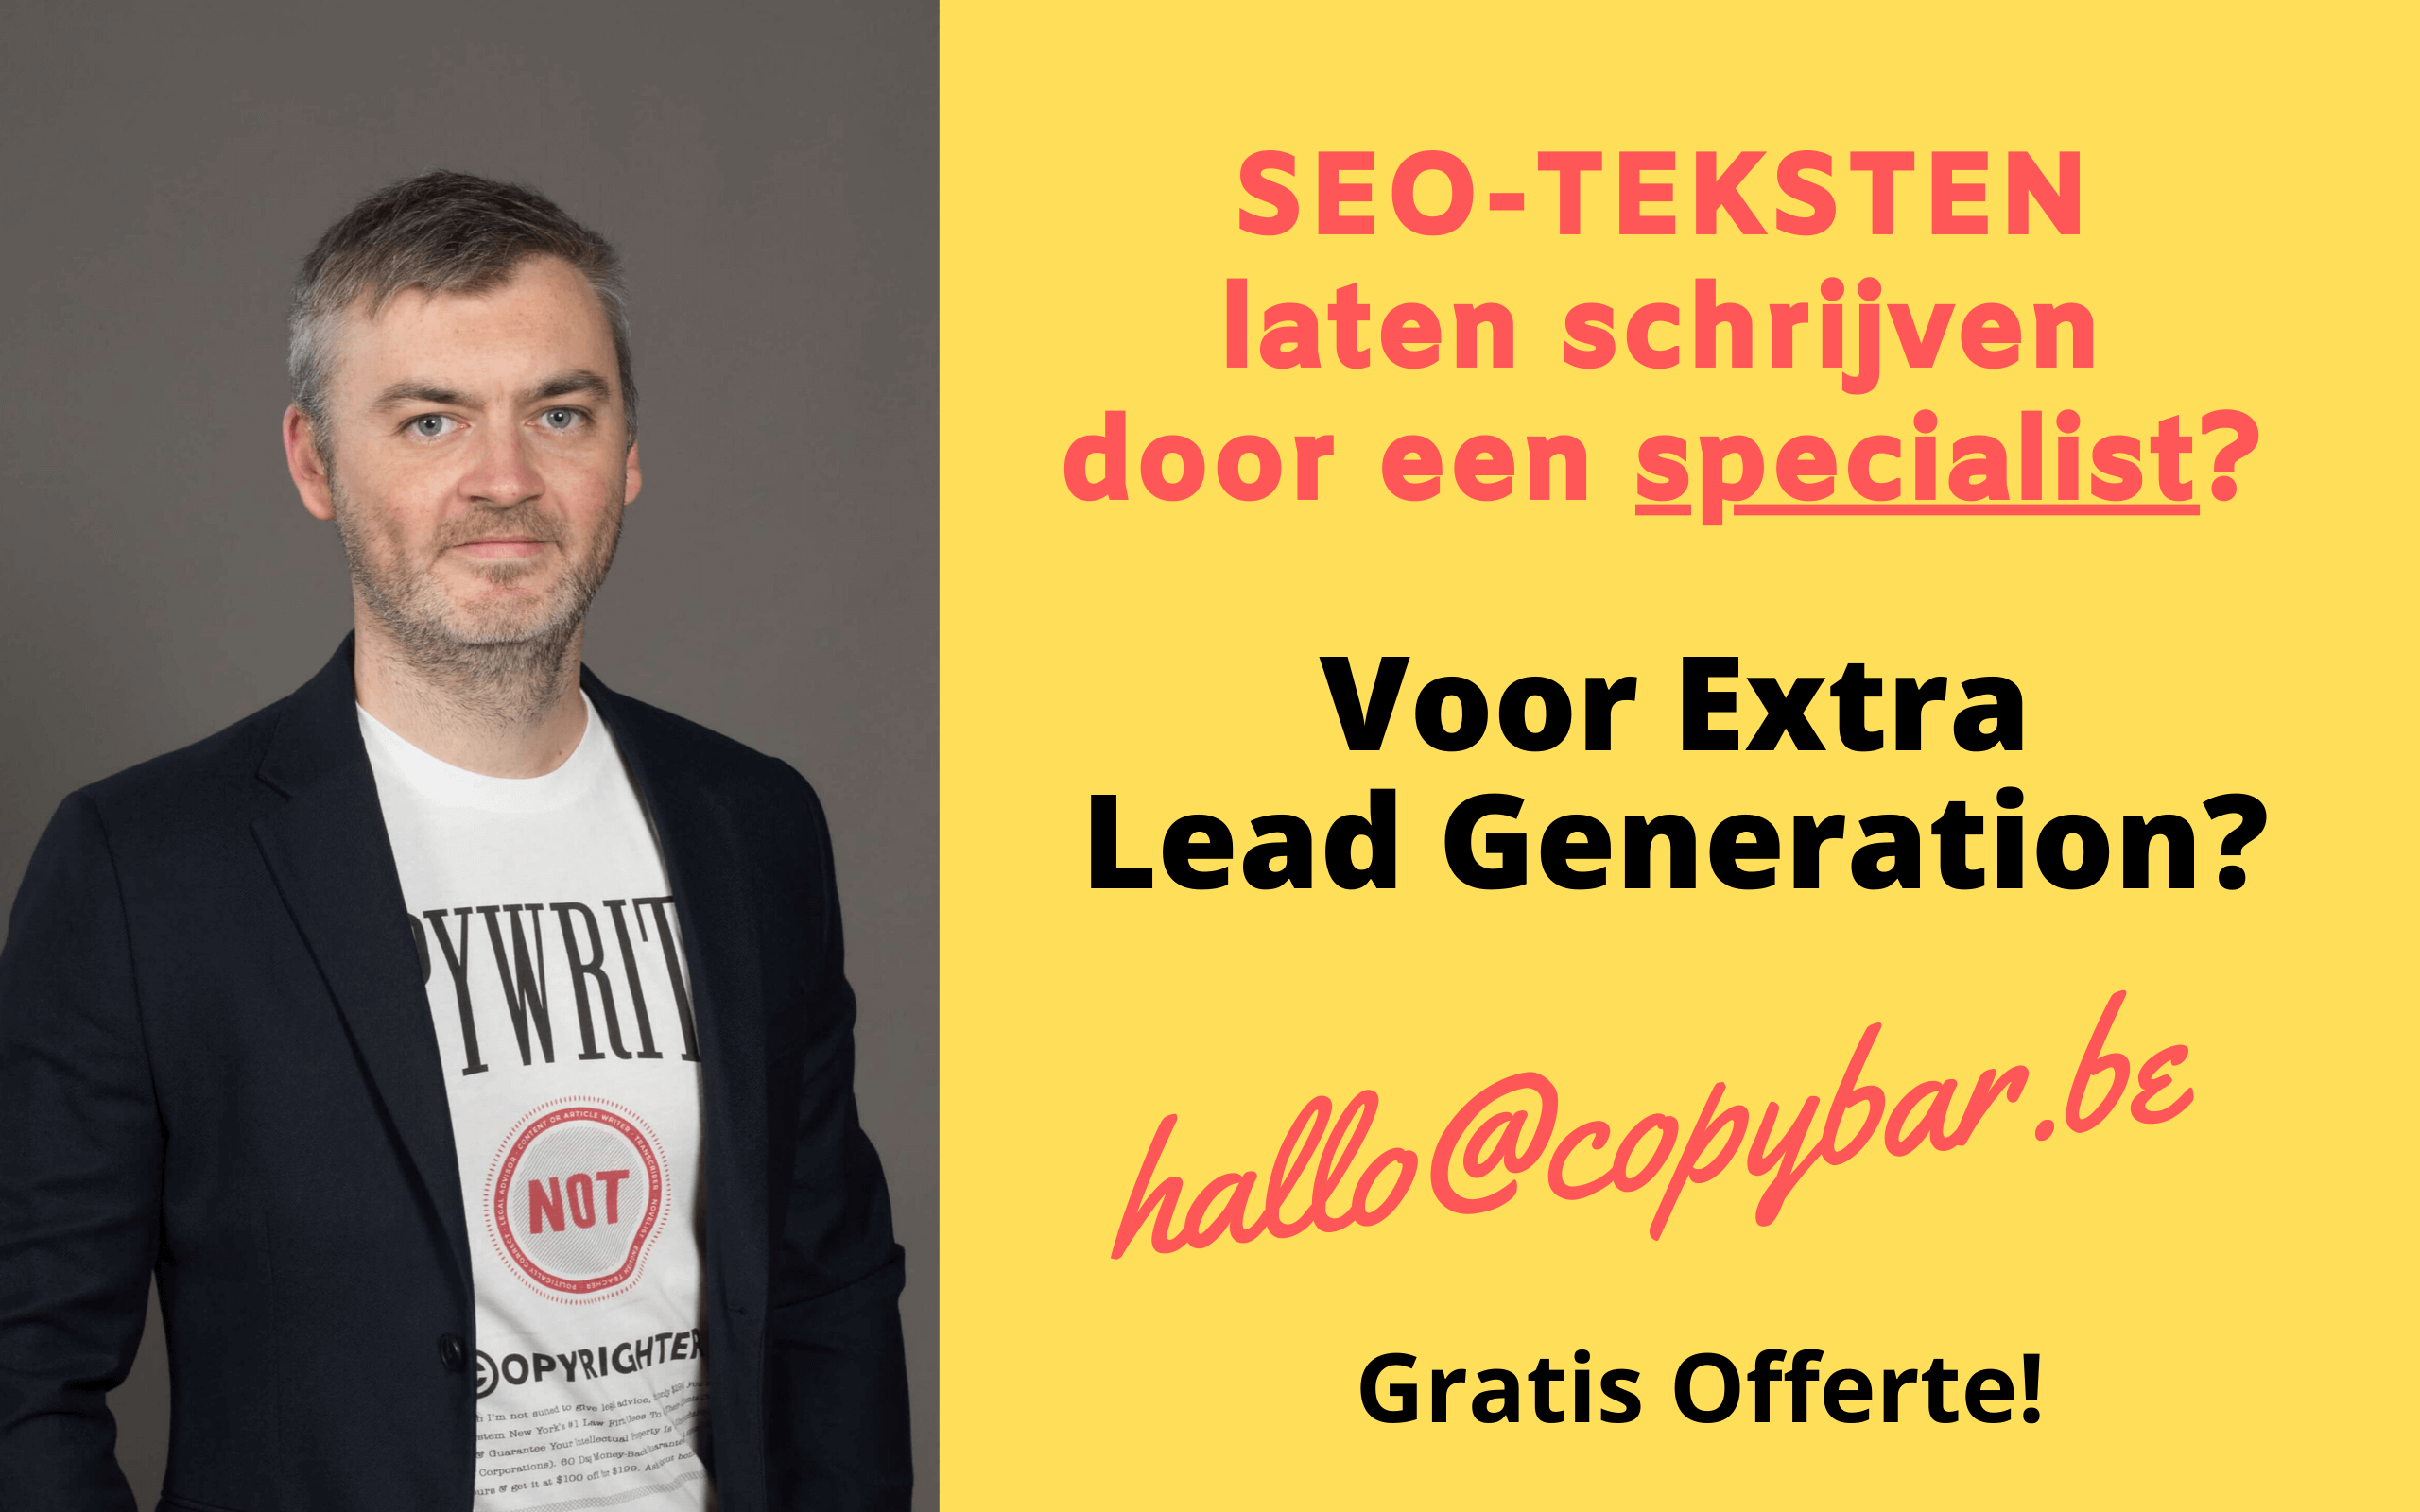 SEO-teksten lead generation